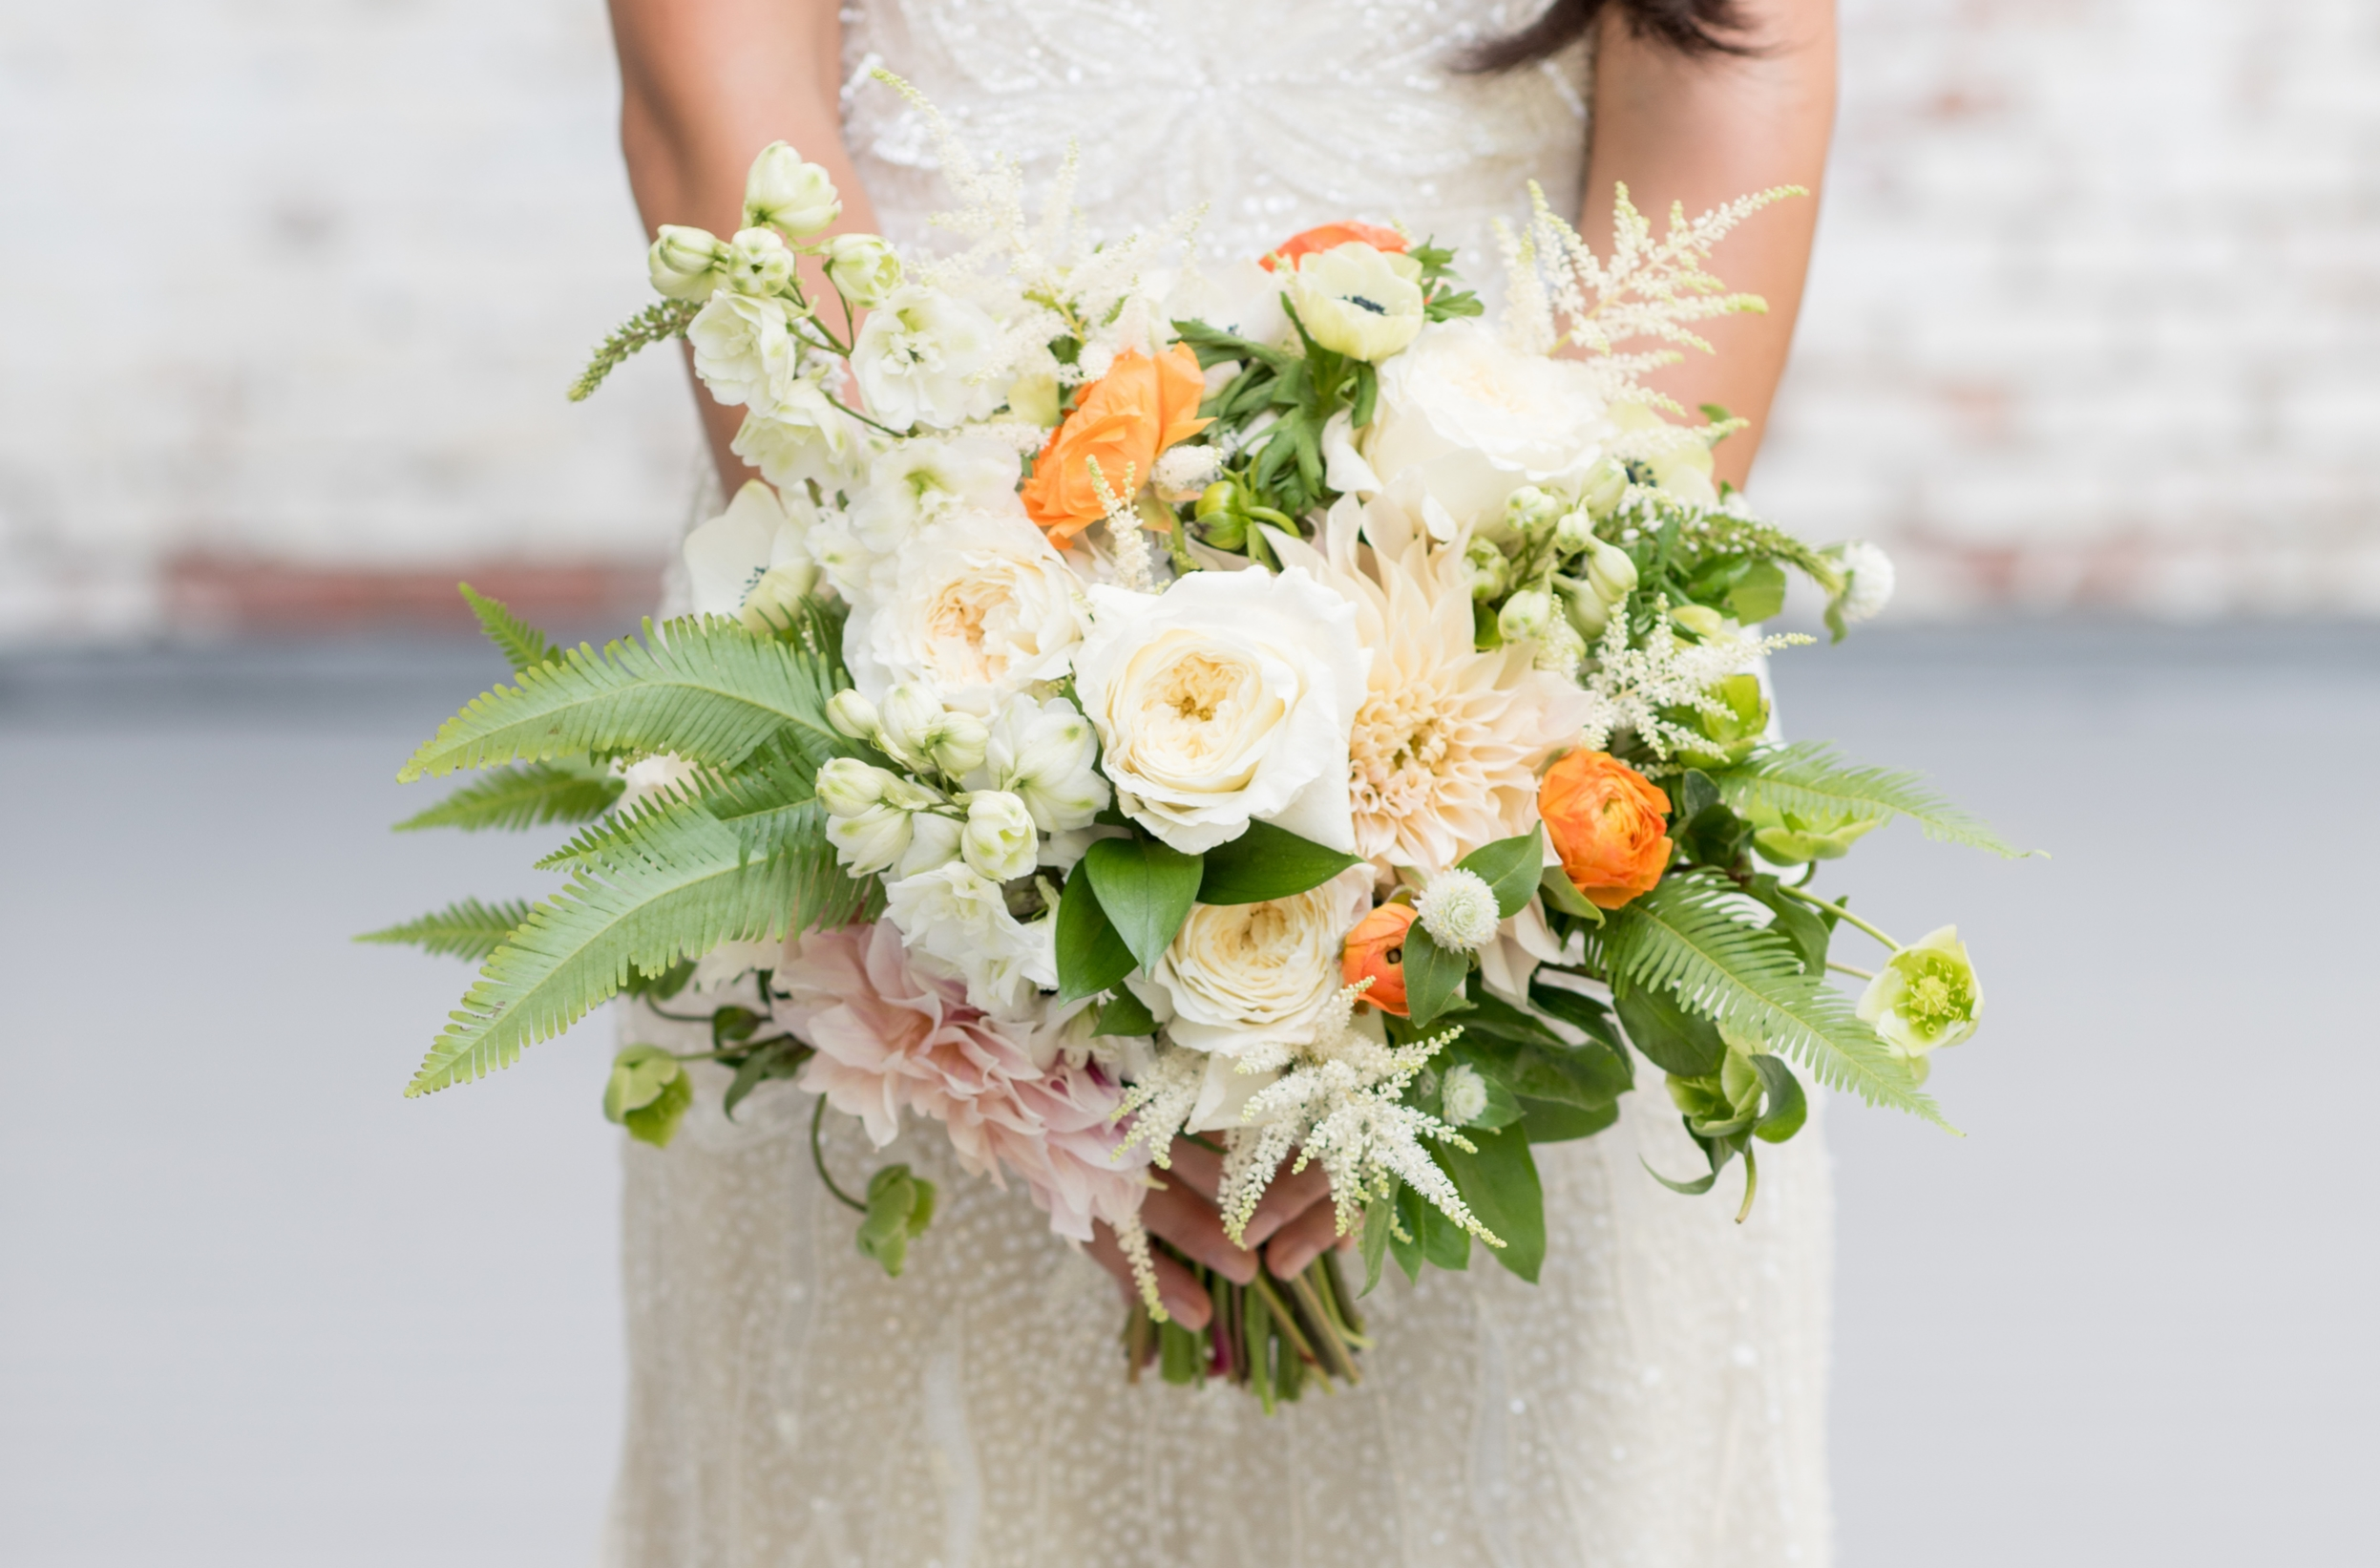 inspired by this - BRIGHT & PRETTY CITRUS WEDDING INSPIRATION